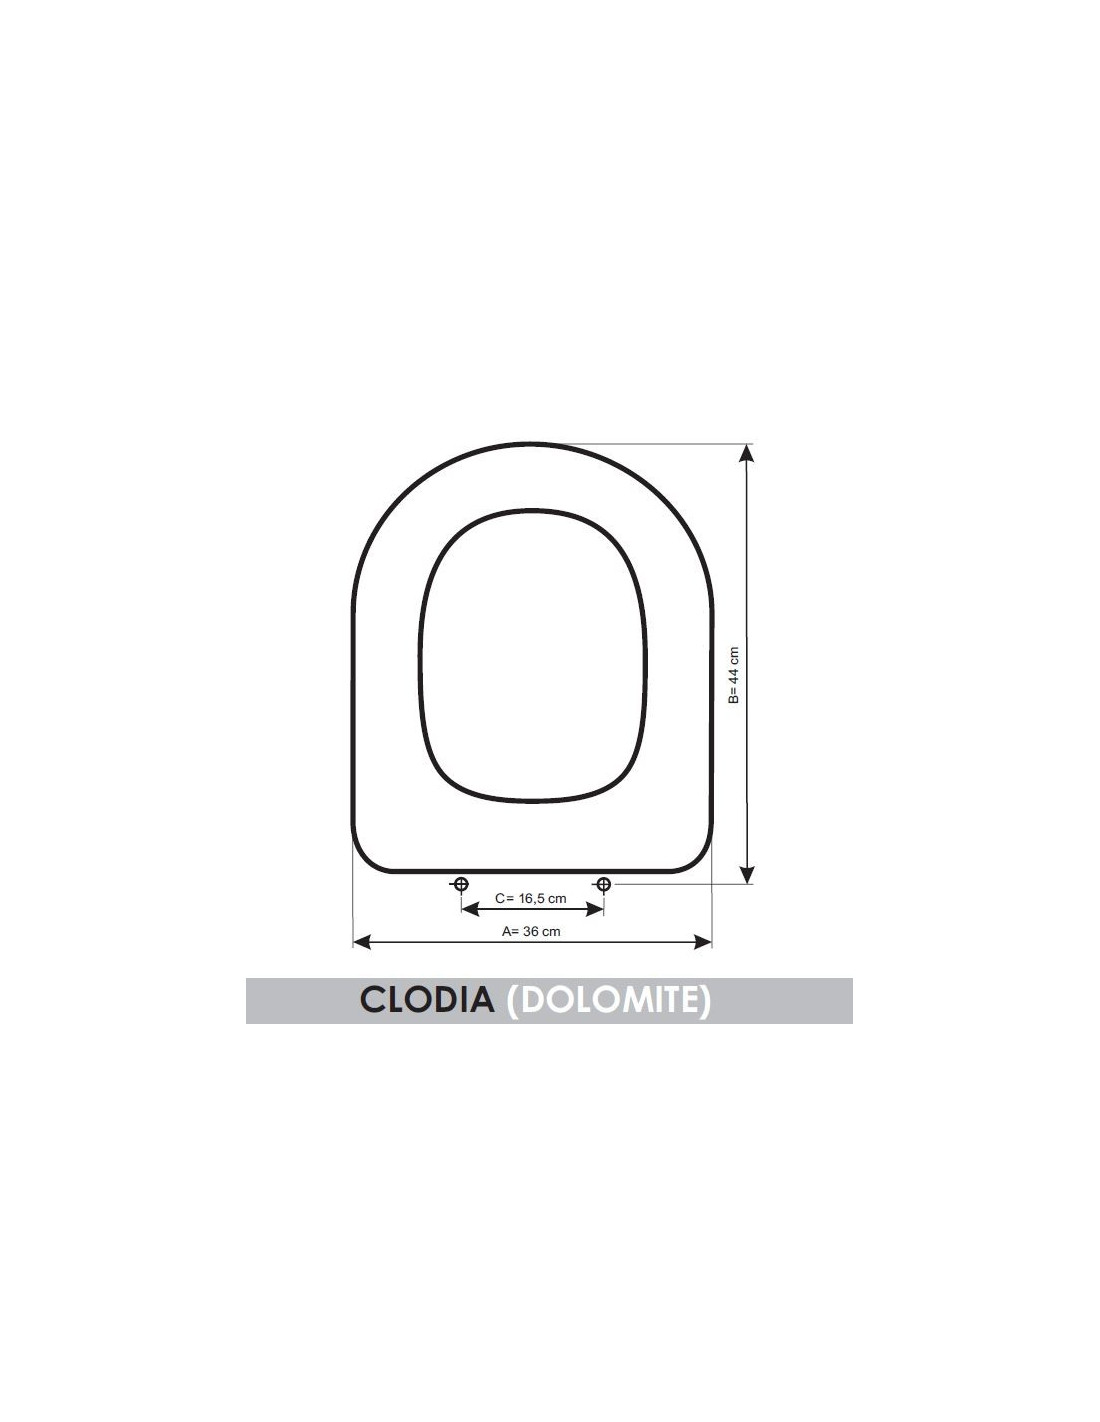 Seat Wc Dolomite Clodia Adaptable In Resiwood